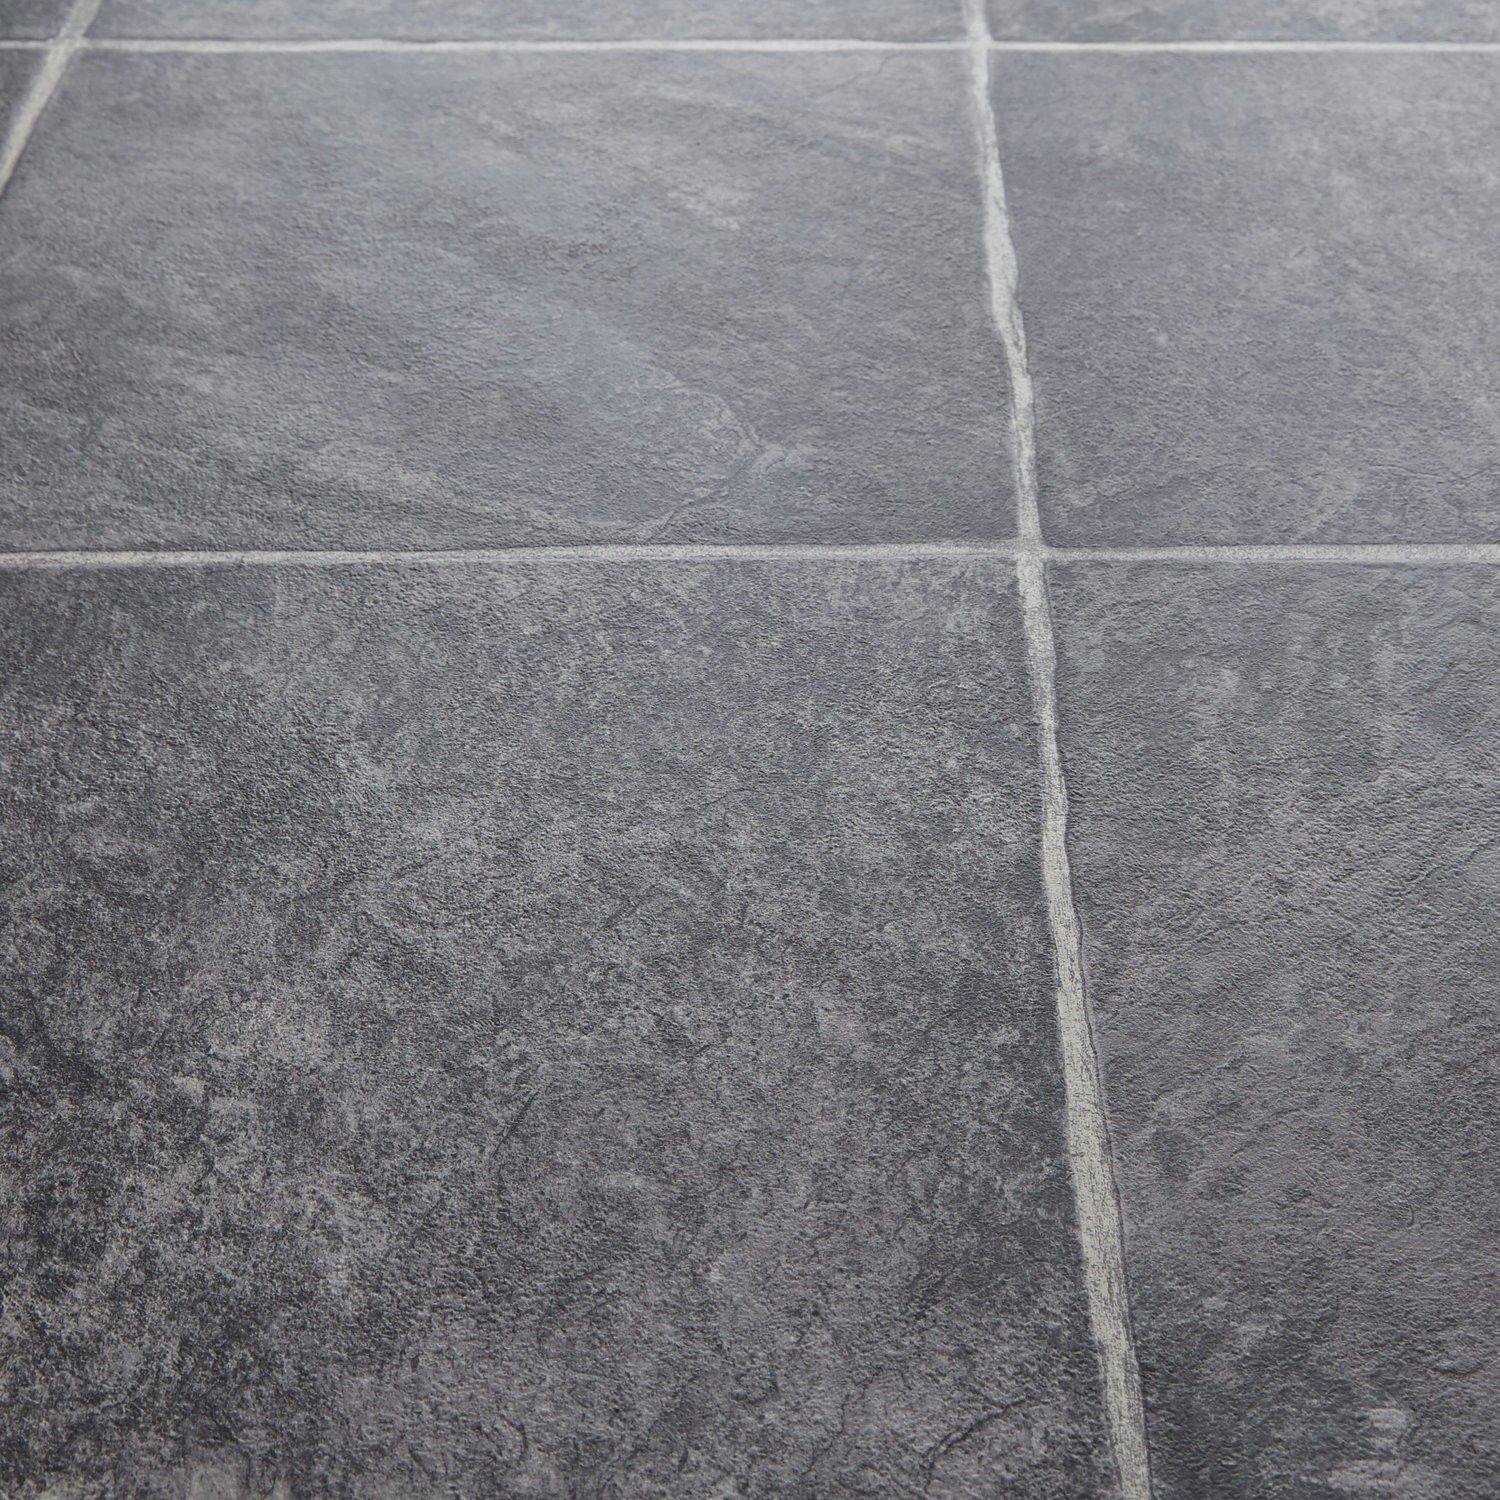 Rhino classic basaltina carbon stone tile effect vinyl flooring rhino classic basaltina carbon stone tile effect vinyl flooring kitchenbathroom dailygadgetfo Gallery